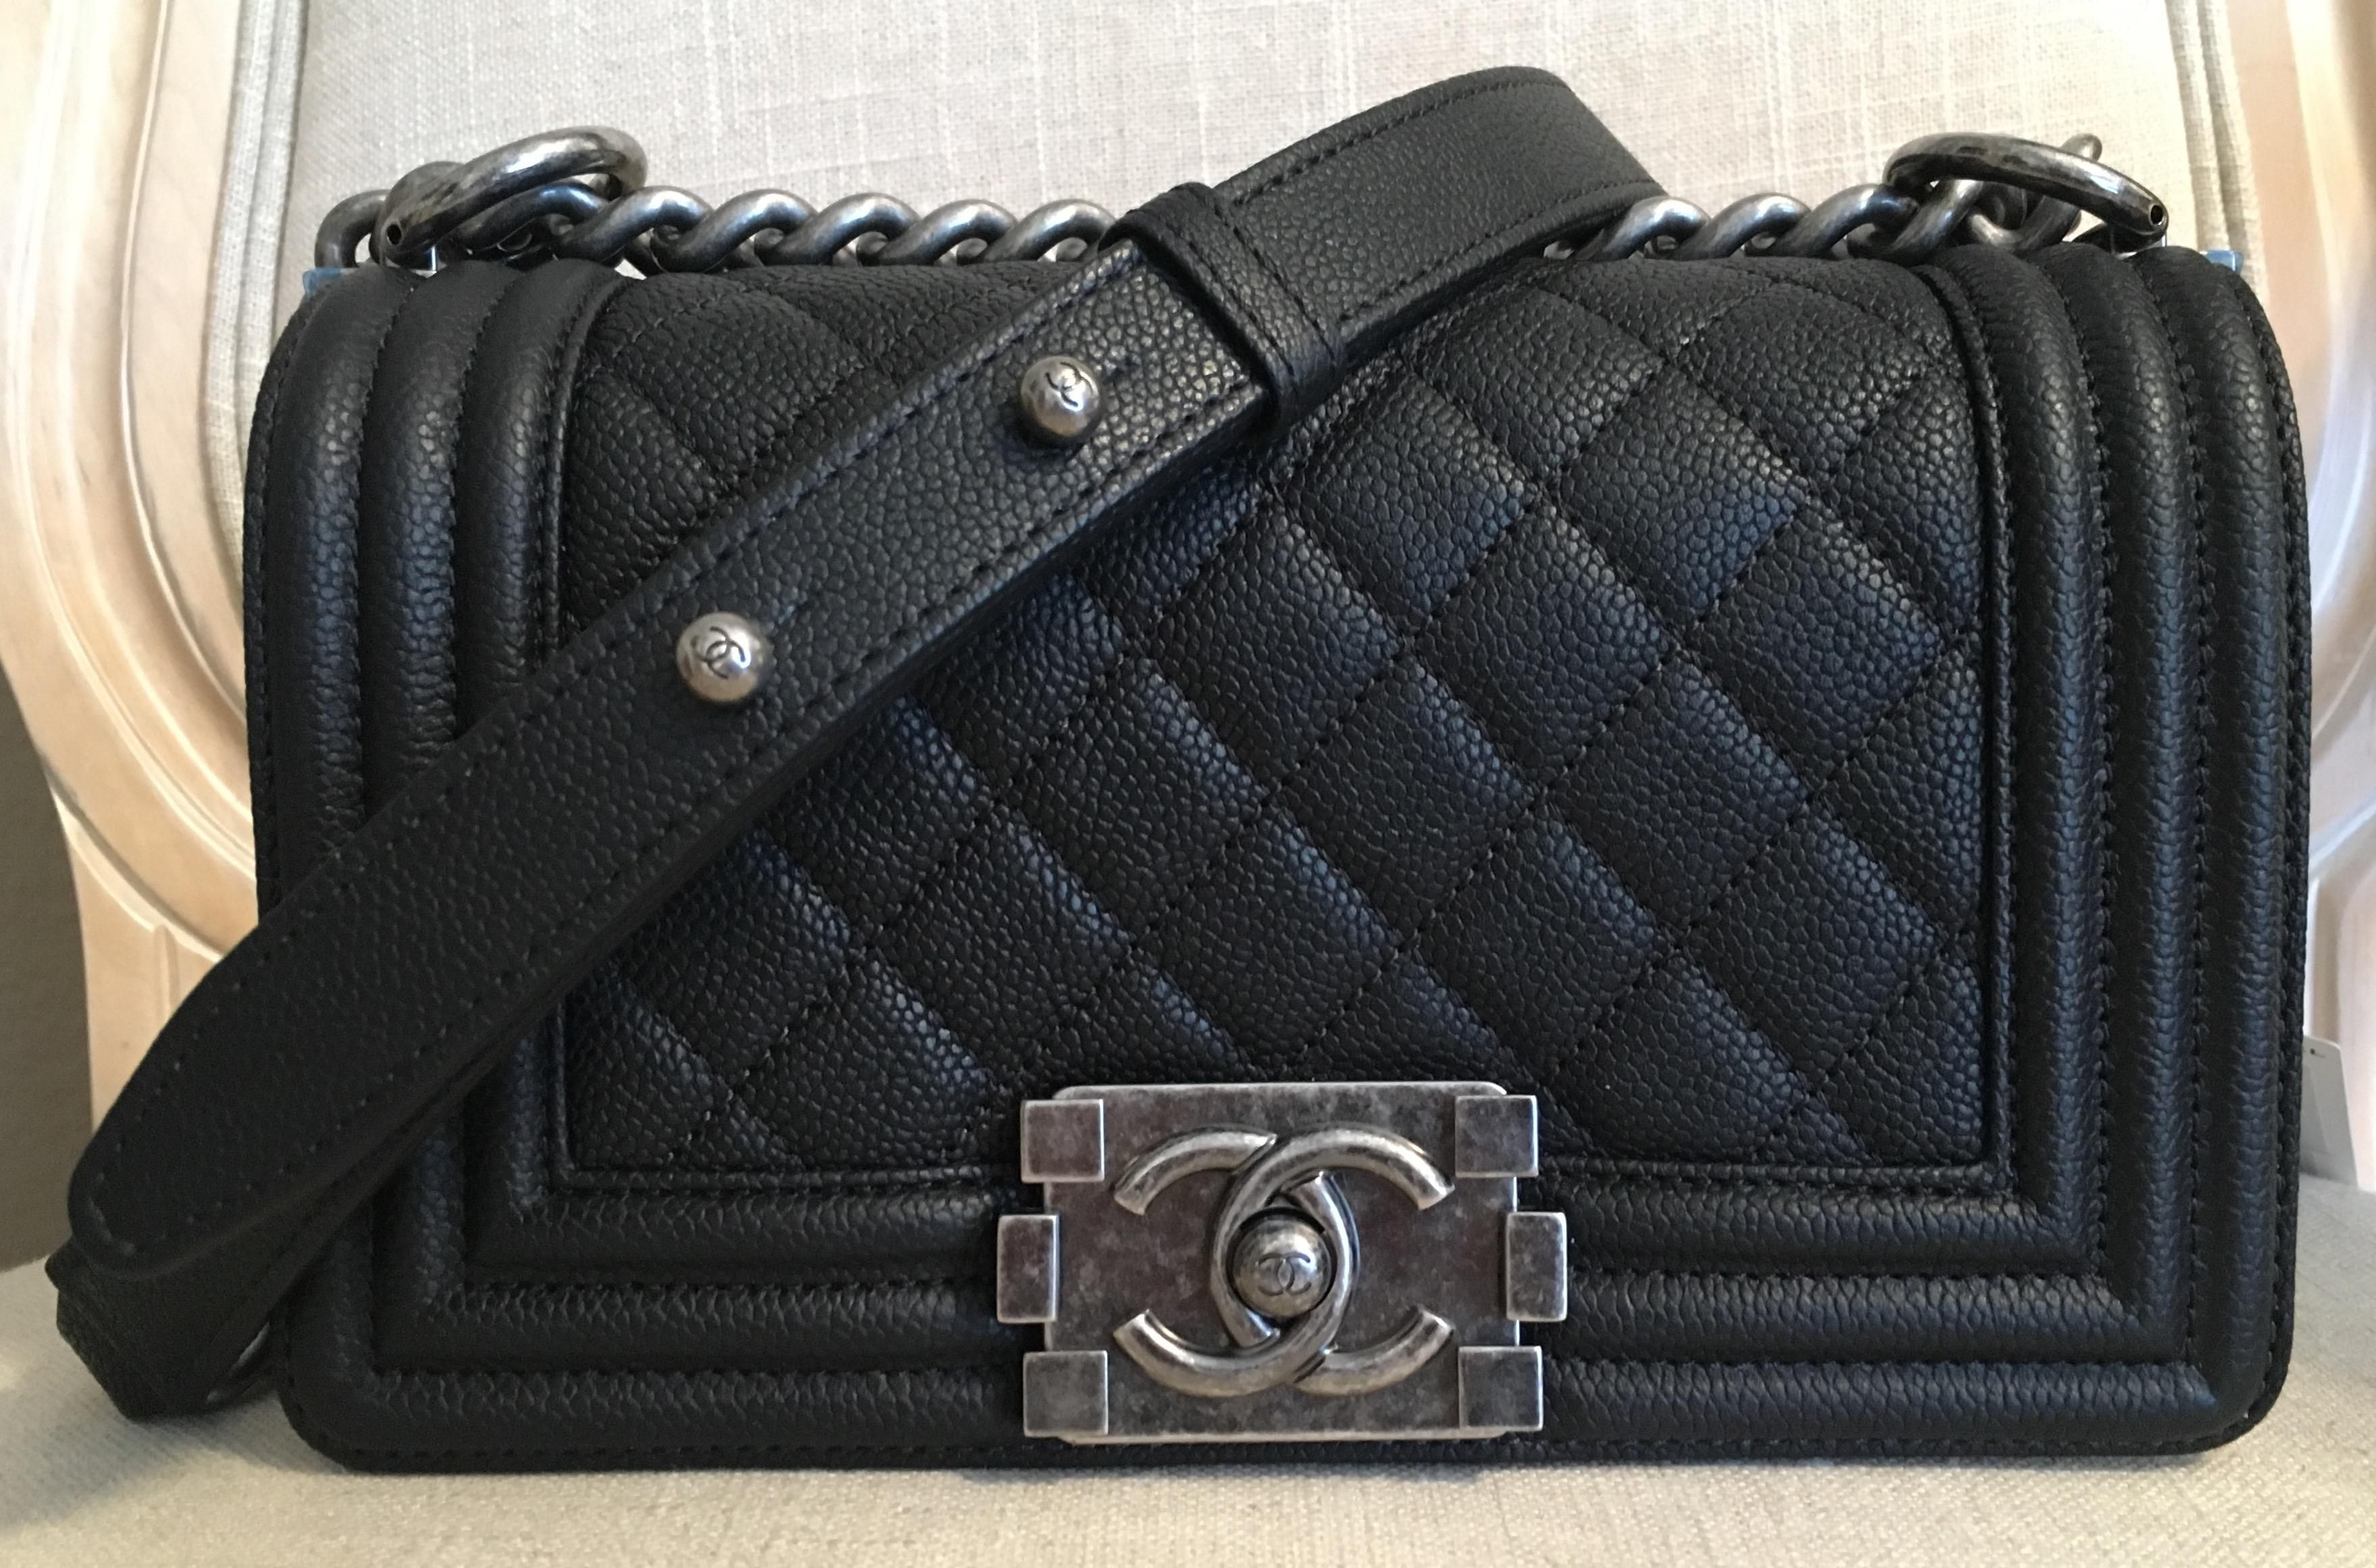 c99b9868c630 Chanel Caviar Leather Boy Flap With Ruthenium Hardware Black Cross Body Bag.  Get the trendiest Cross Body Bag of the season! The Chanel Caviar Leather  Boy ...